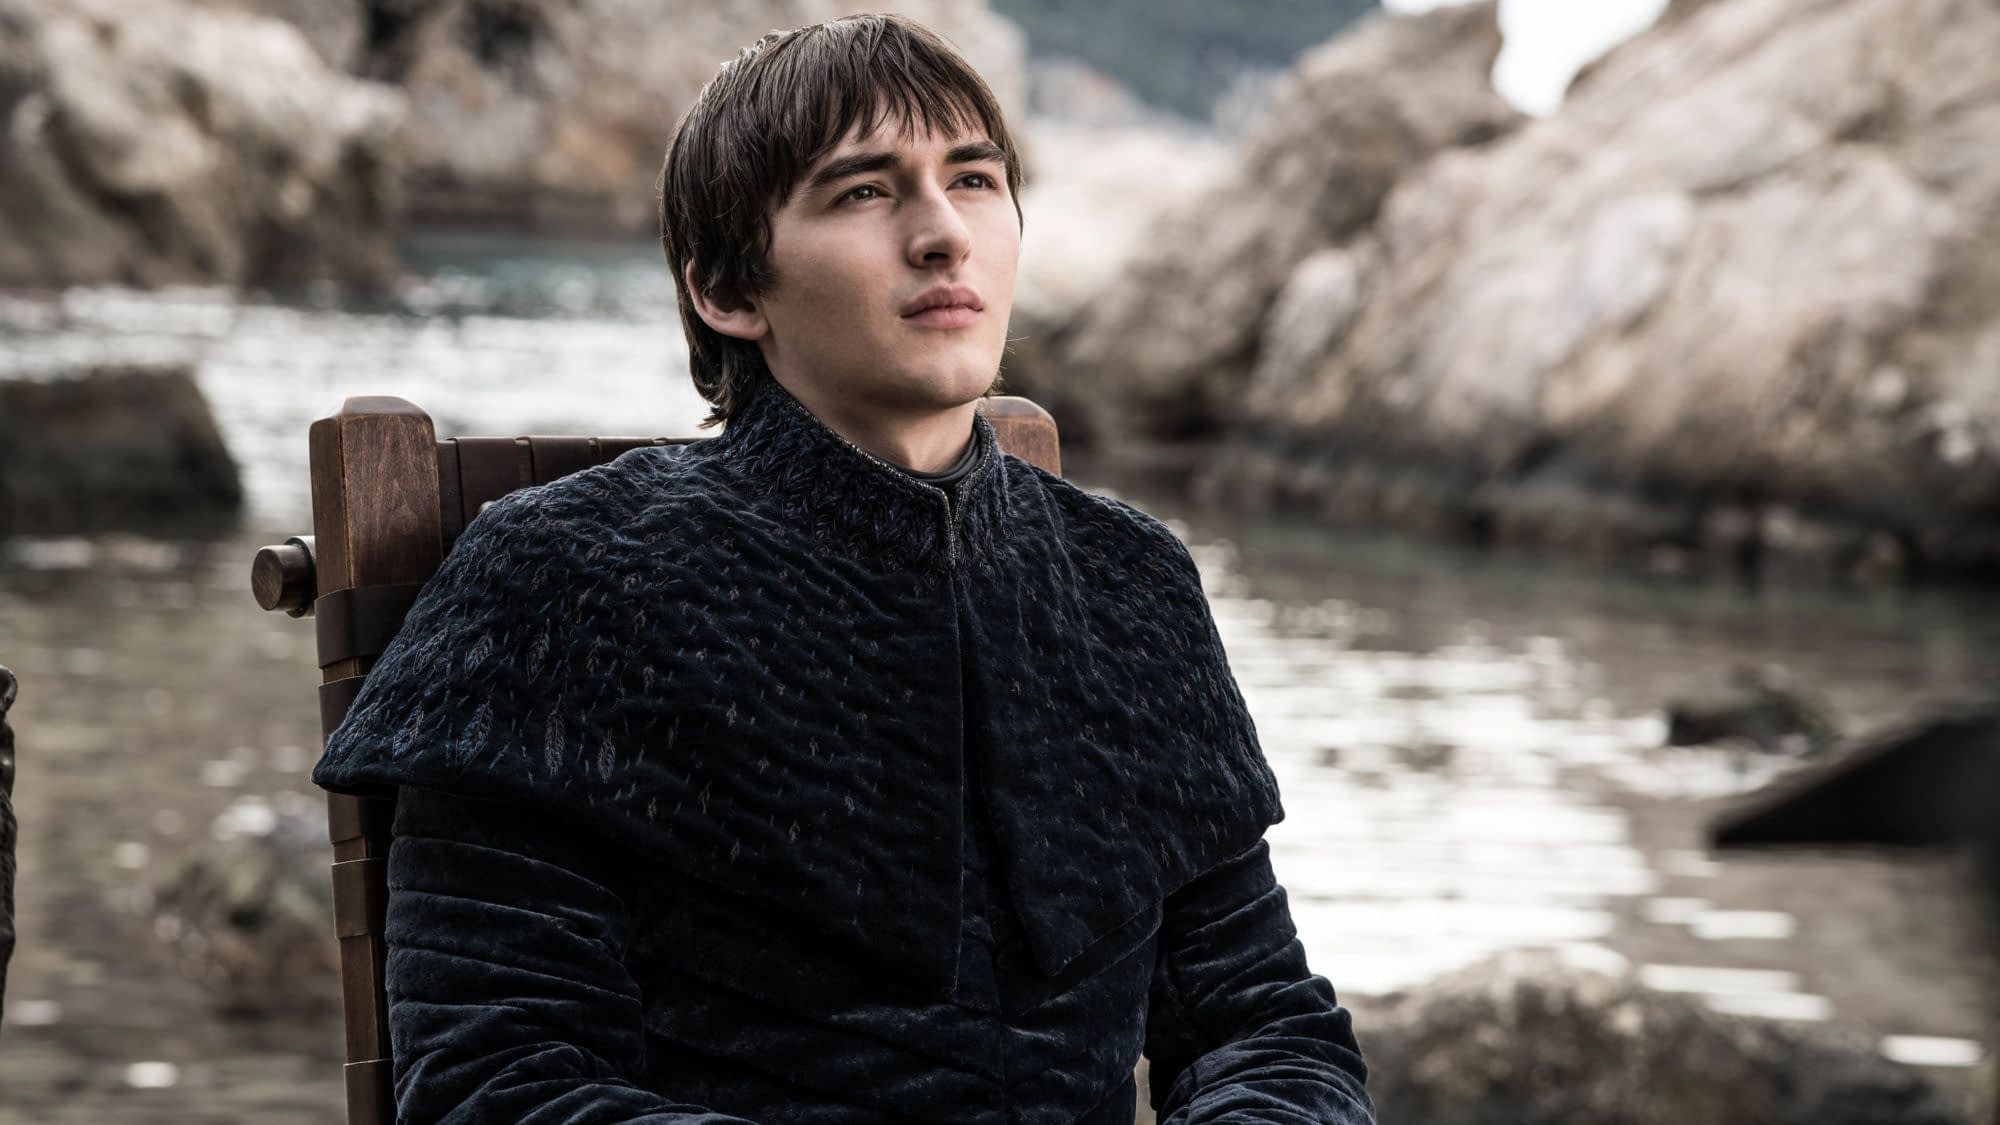 'Game of Thrones' End in Bran's [Isaac Hempstead Wright] Own Words